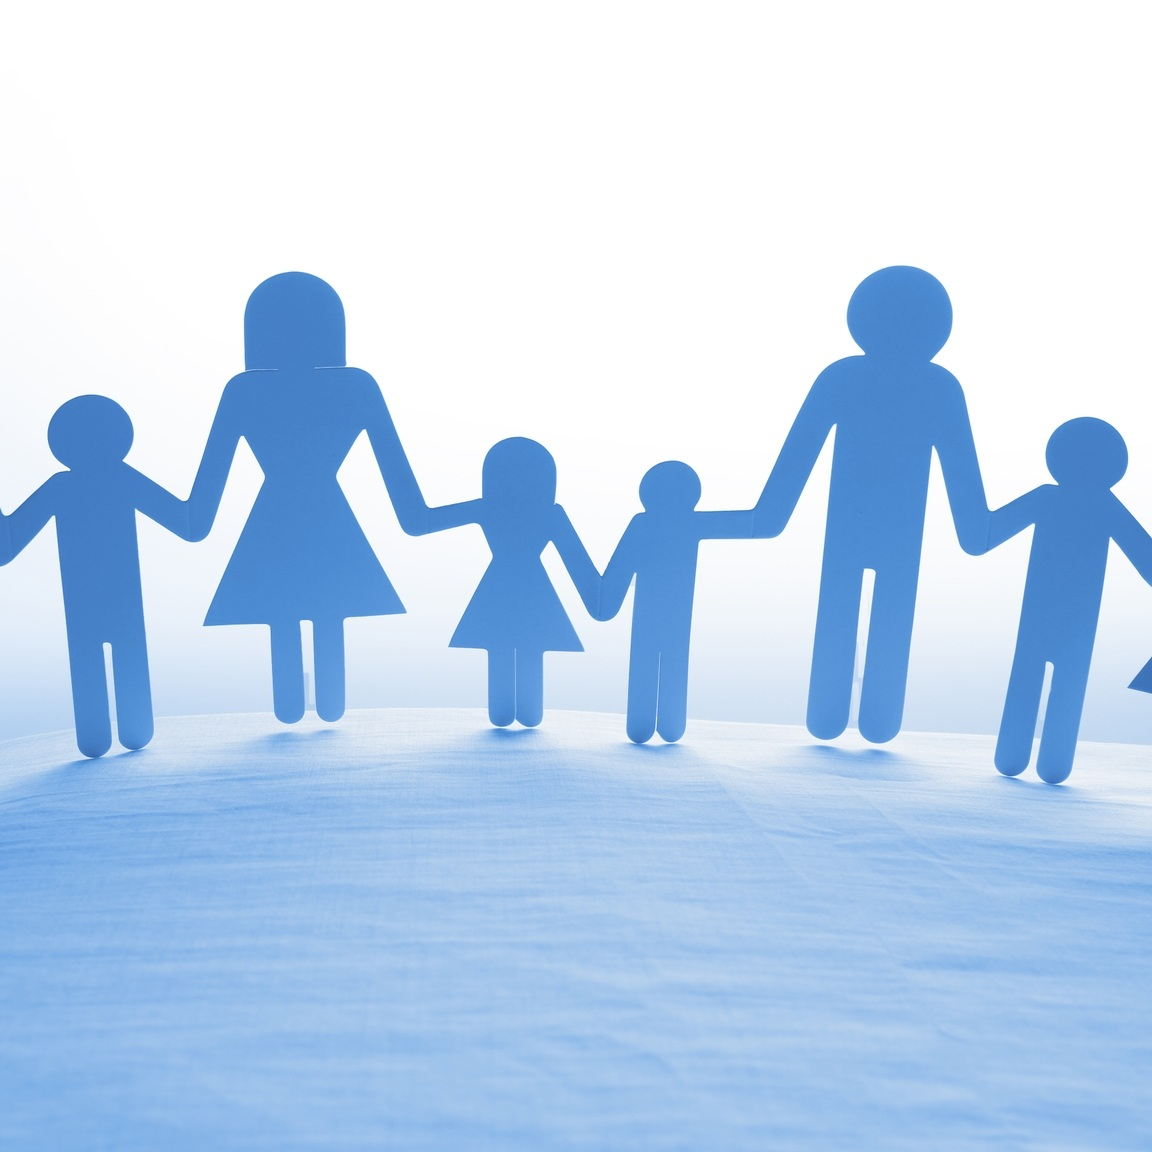 adhd autism parent support   experts in adhd and autism guide you to bringing out the best in your special child!